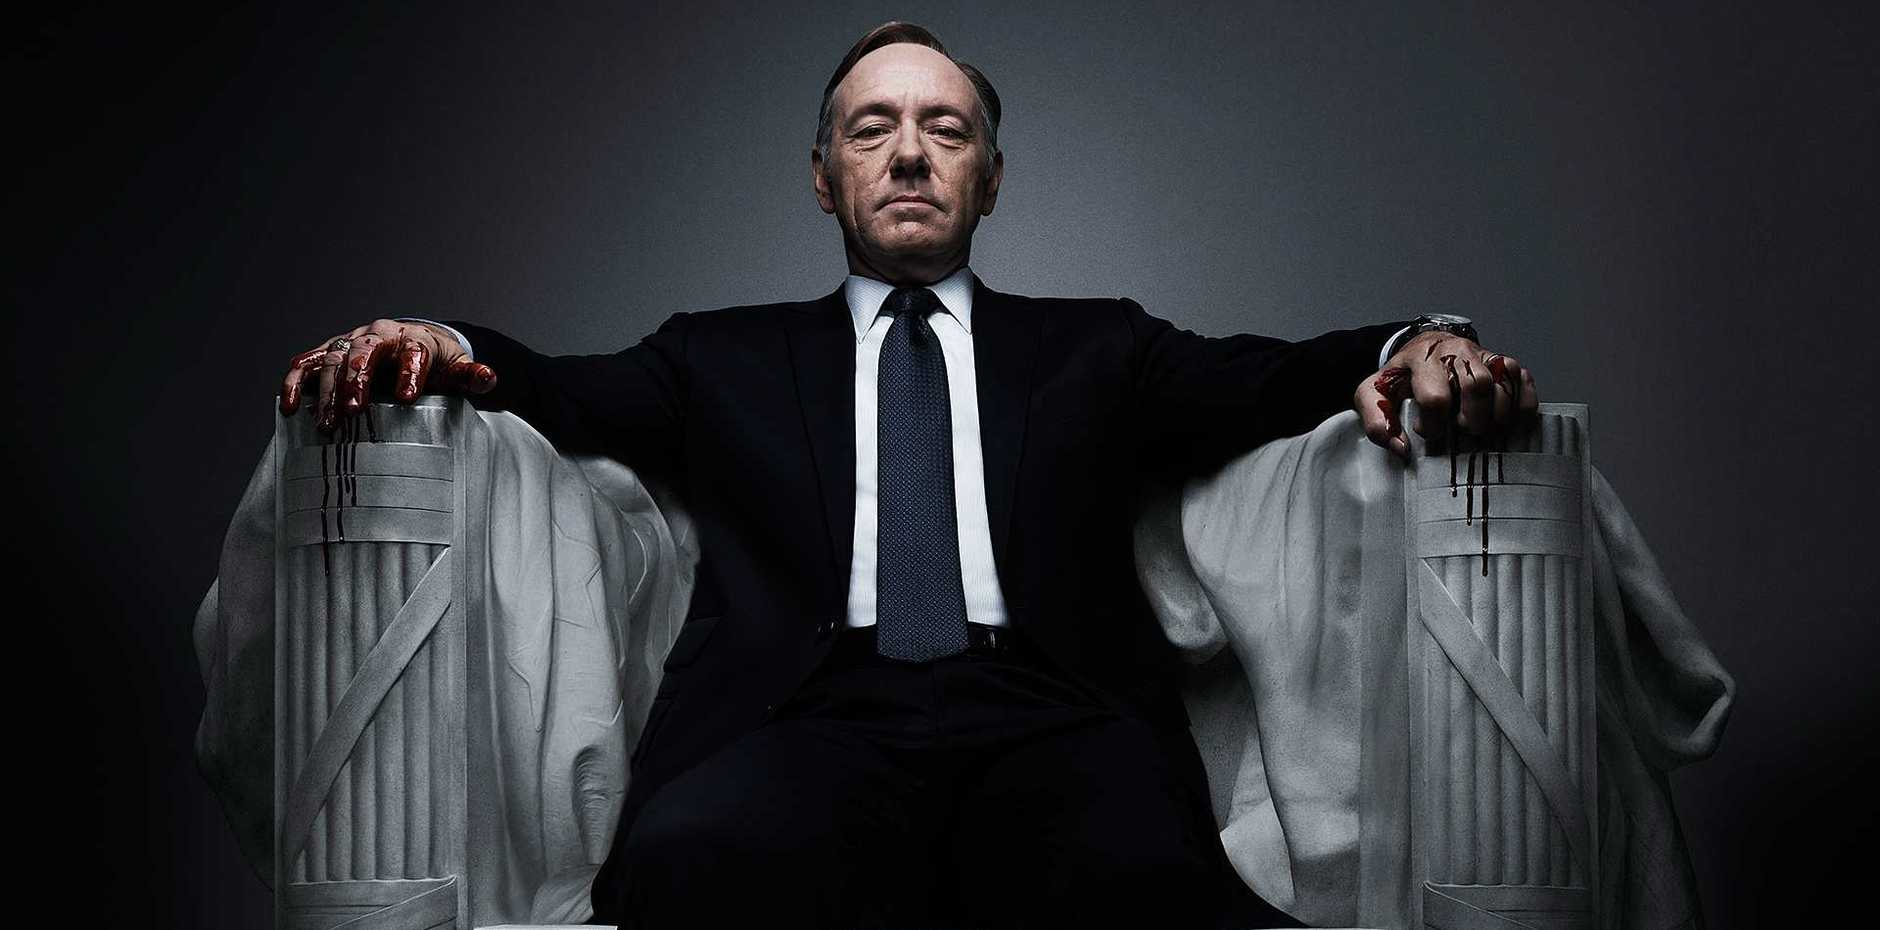 Kevin Spacey in critically-acclaimed Netflix drama House of Cards.